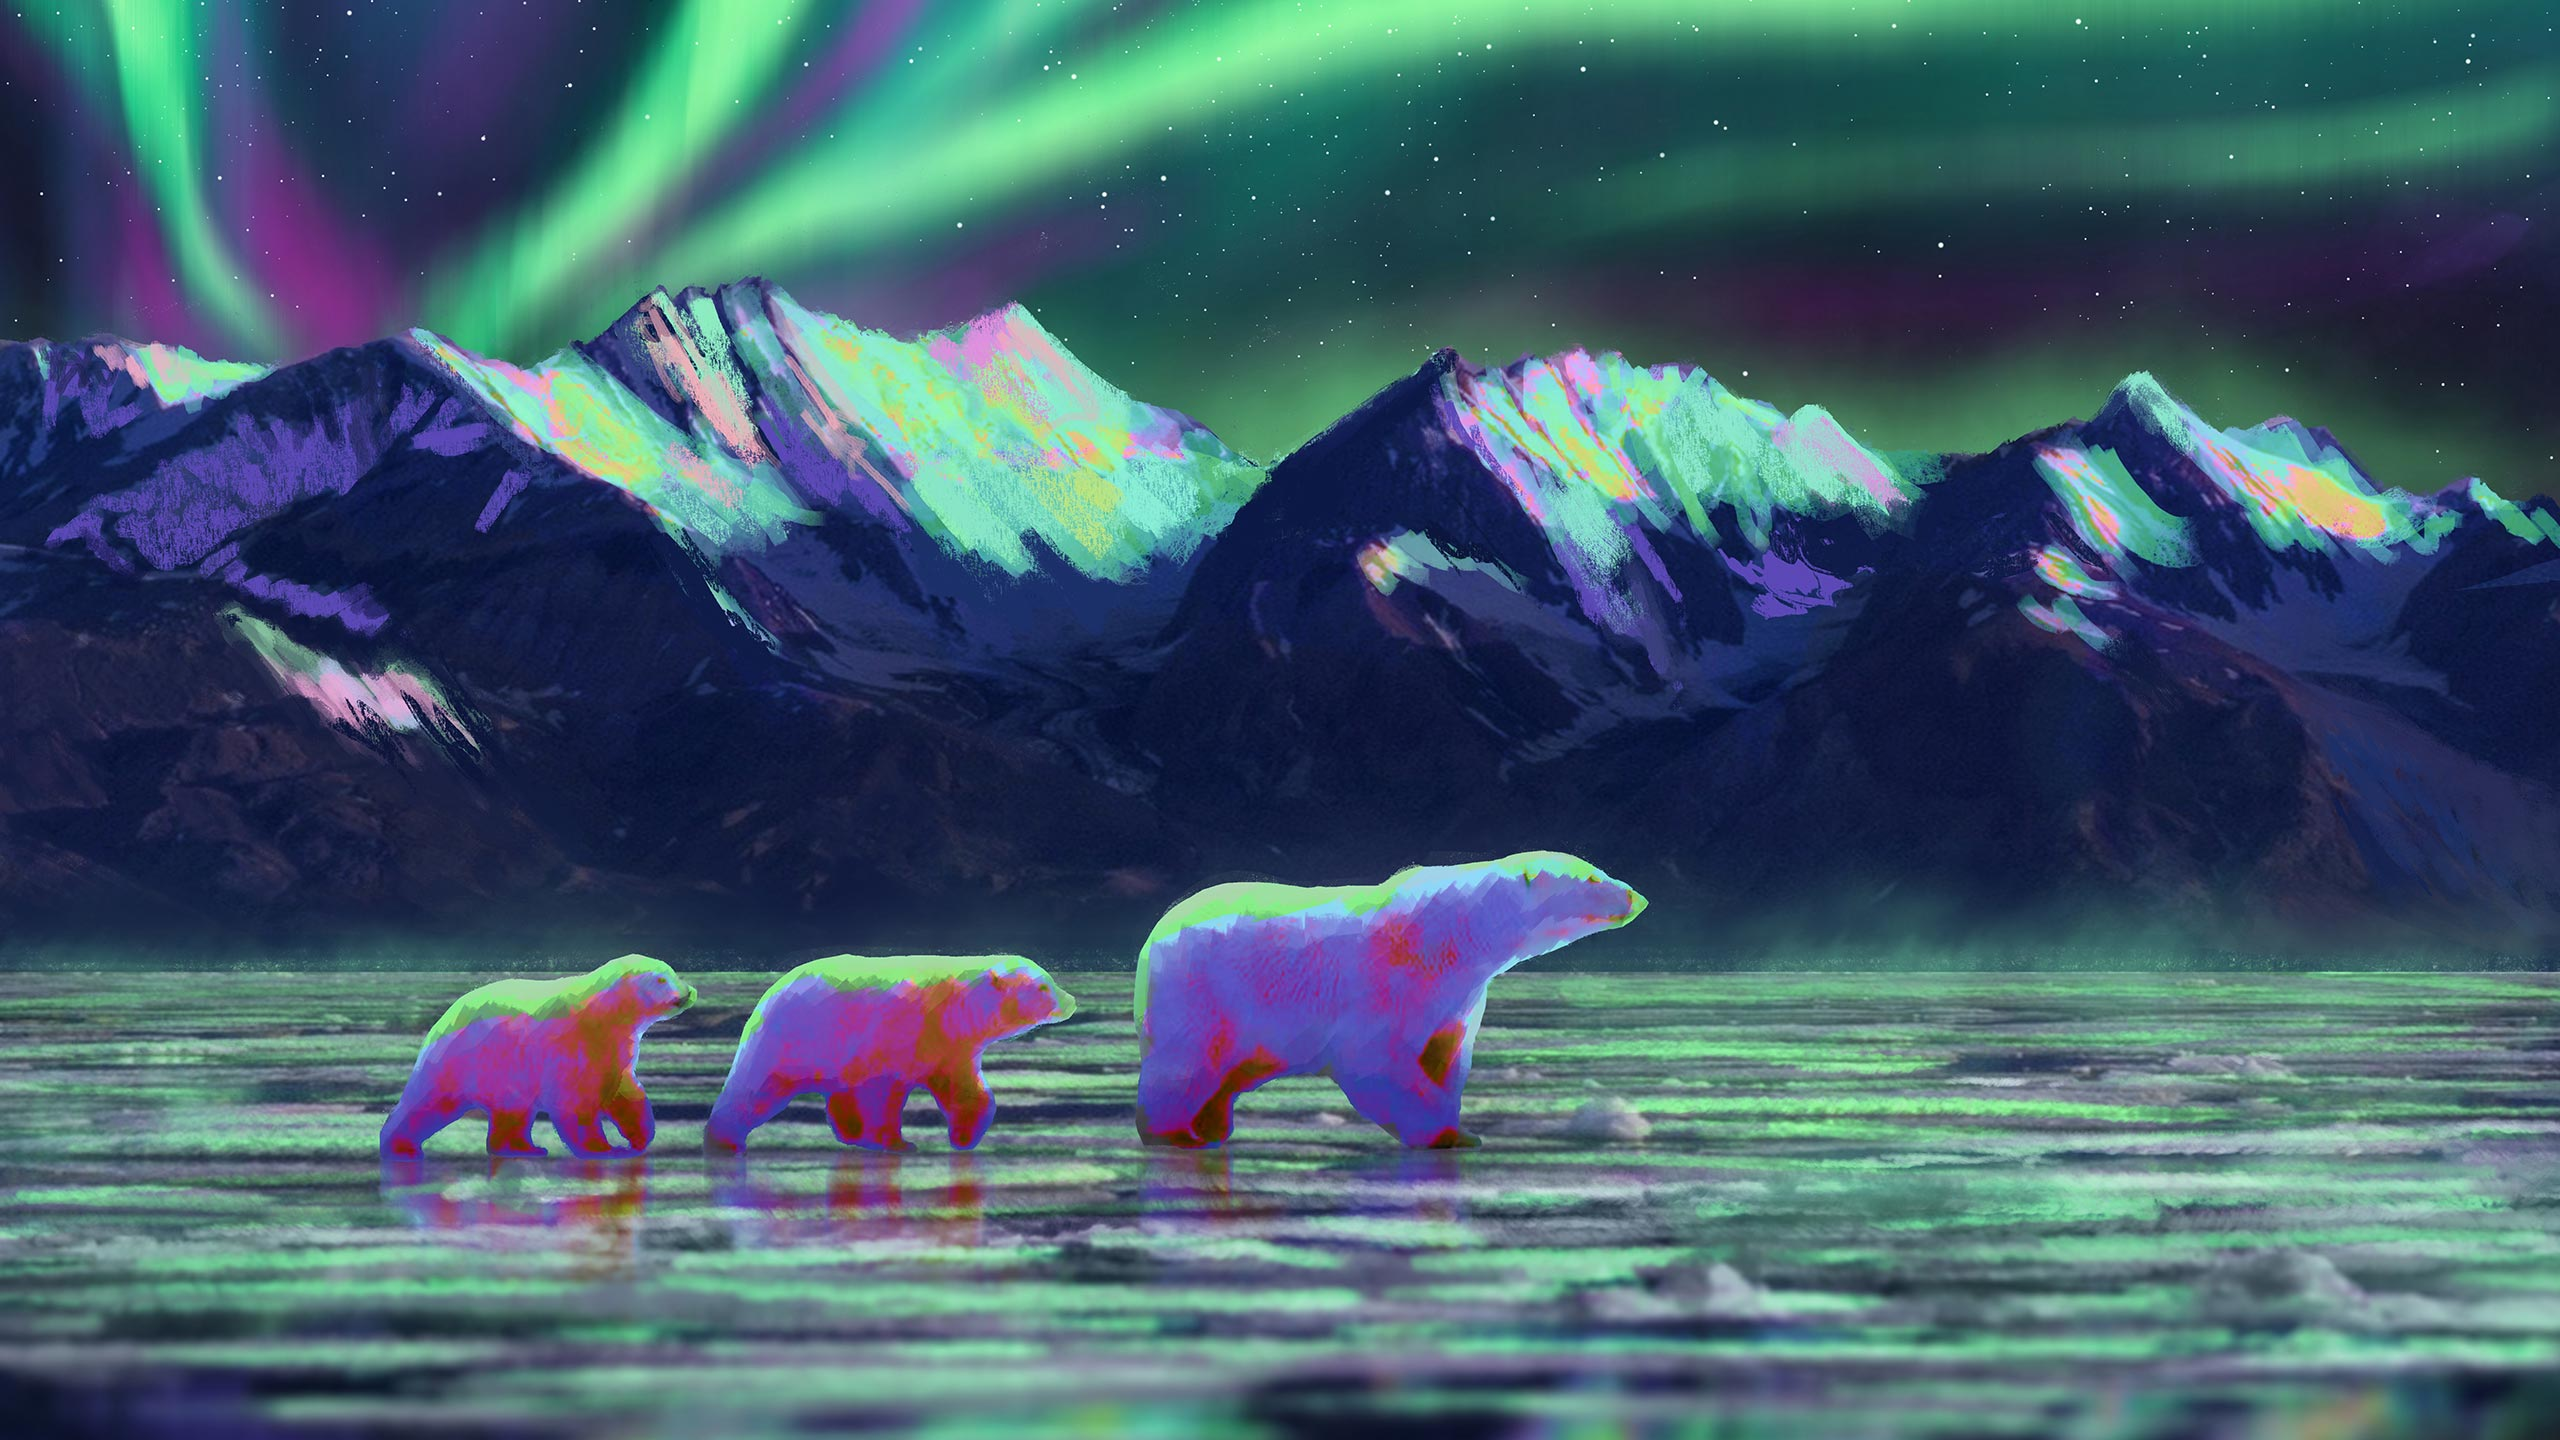 Trail & Kale Aurora Polar Bears and Mountains